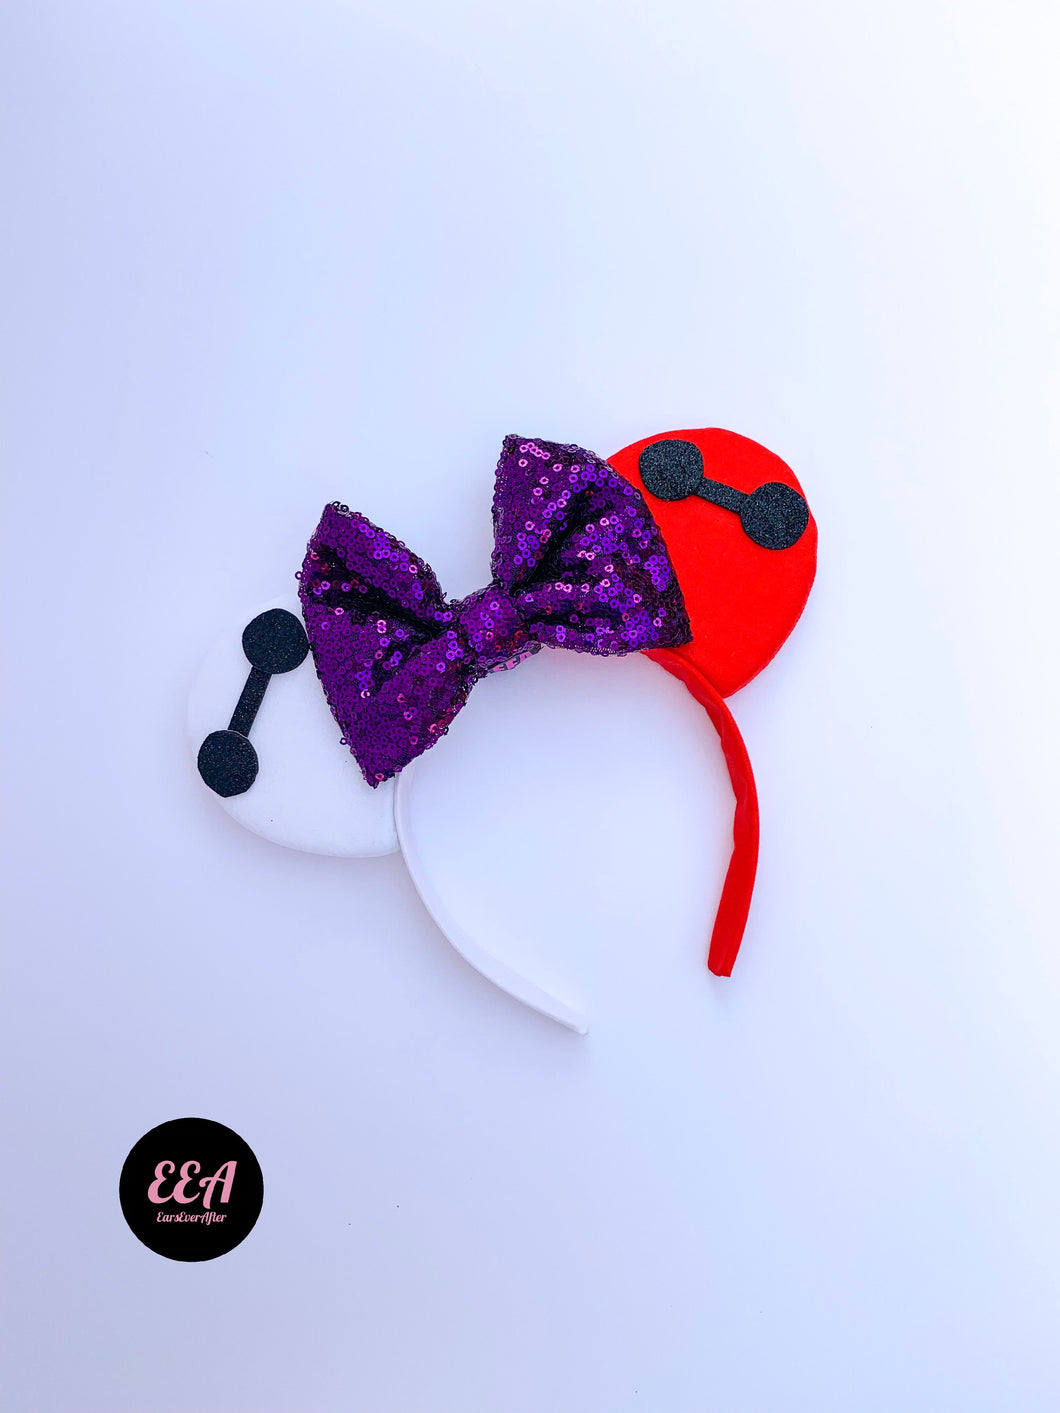 Ears Ever After, Disney Ears, Minnie Mouse Ears, Mickey Ears, Custom Mickey Ears, Mouse Ears, UK Disney Ears, Minnie Ears, Mickey Ears, Disney, Baymax Ears, Big Hero 6 Ears